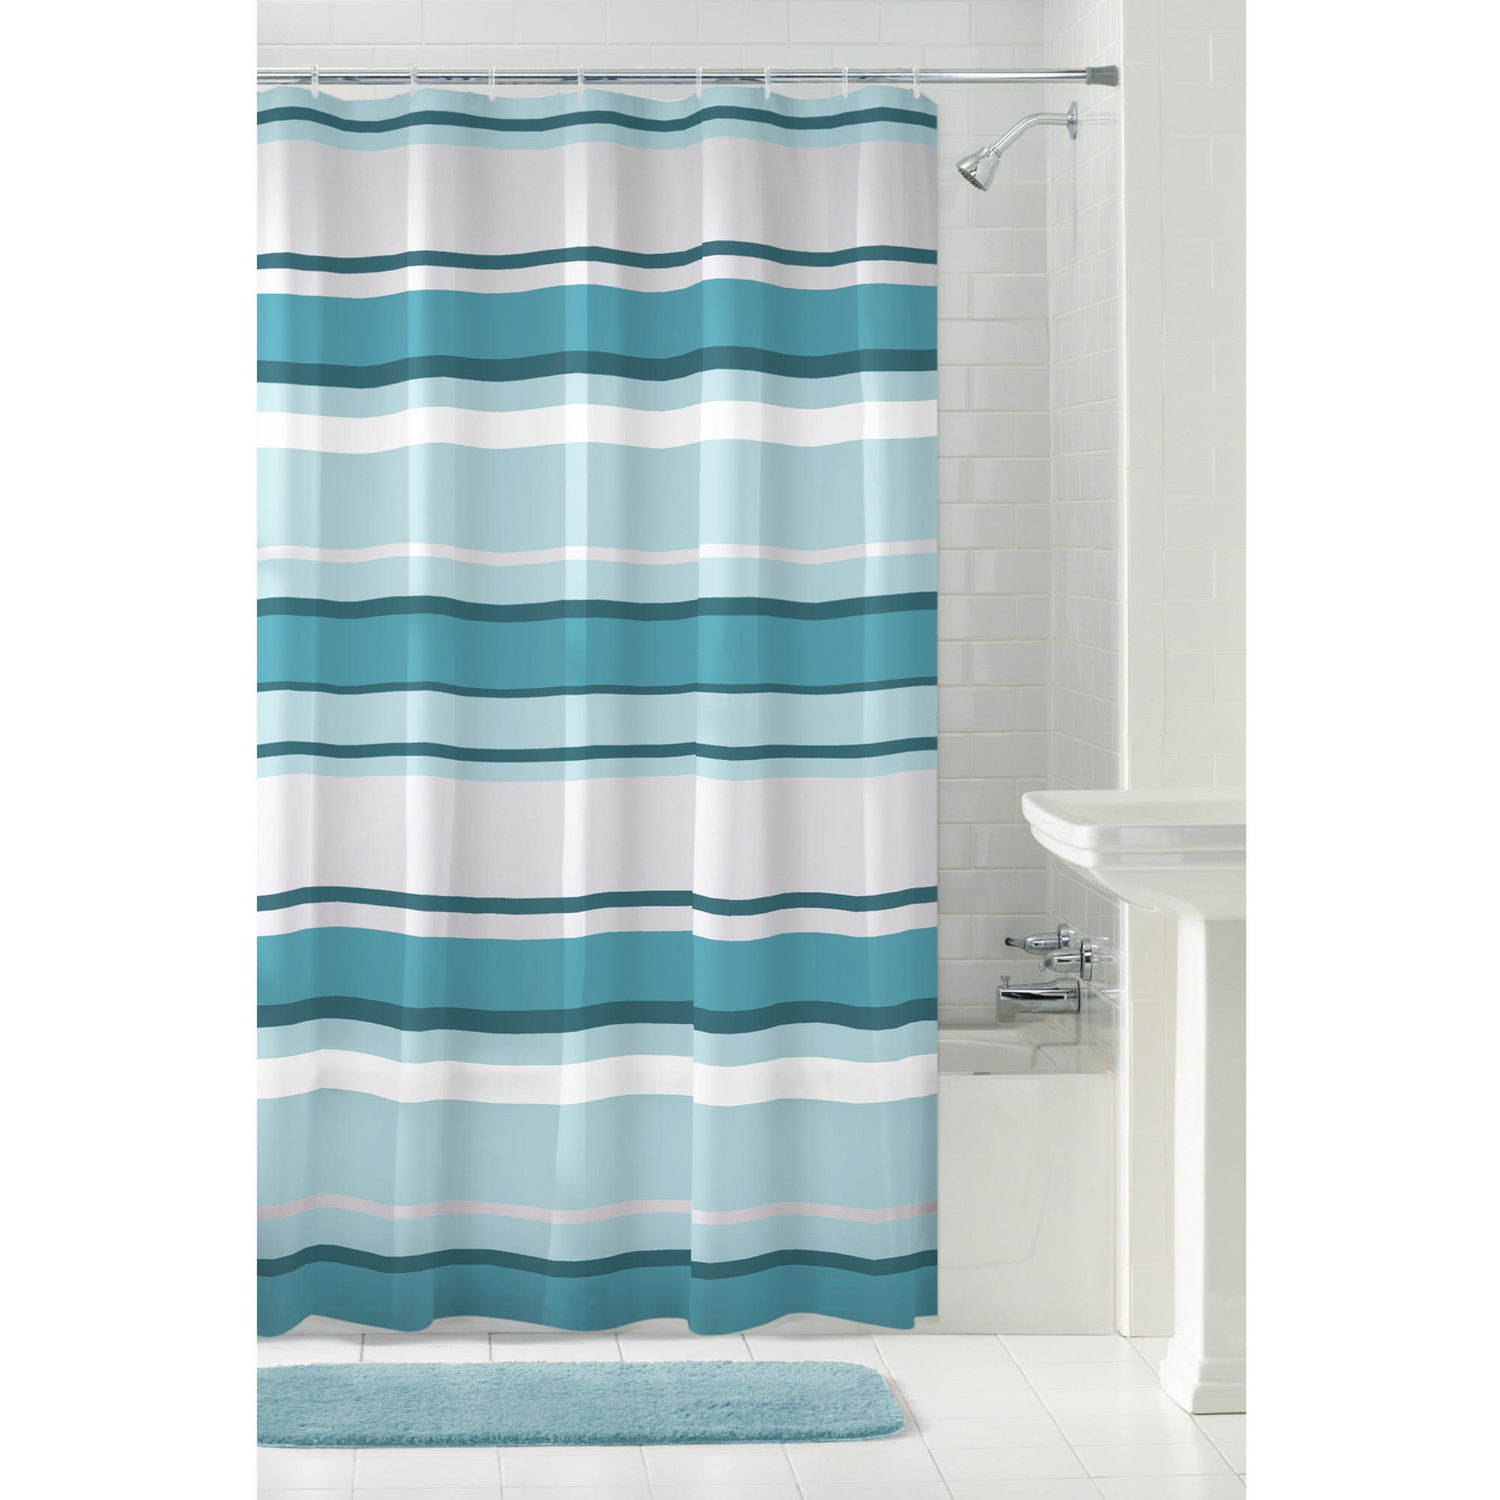 Mainstays Peva James Stripe Shower Curtain Or Liner 70 Inches X 72 Inches Blue